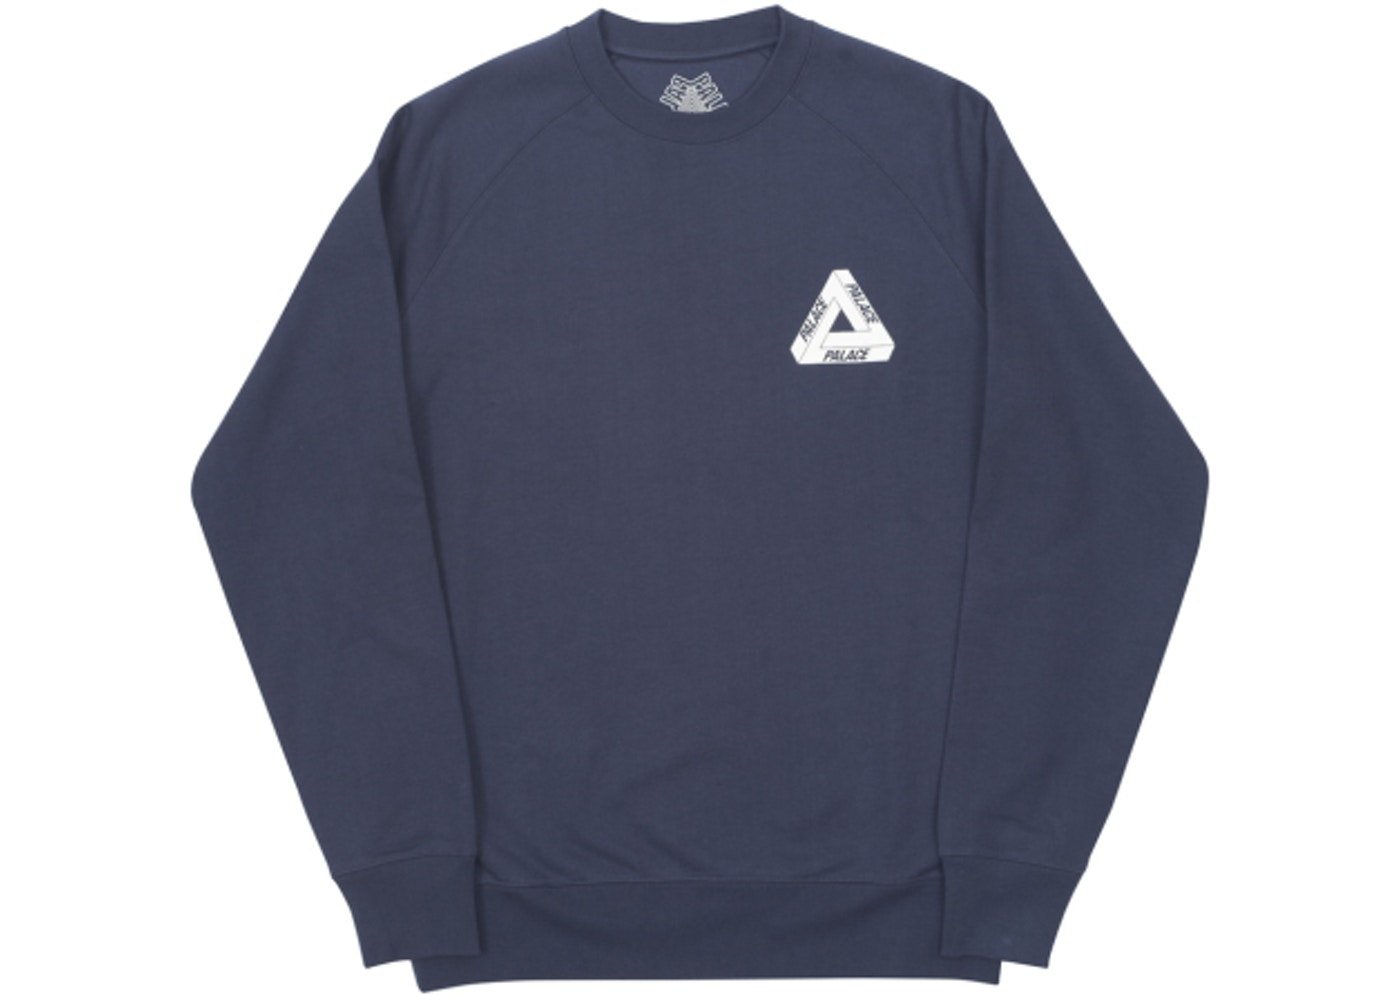 4abfa823e4fc Palace Tri-Ferg Crew Internationale Navy - Palace Internationale